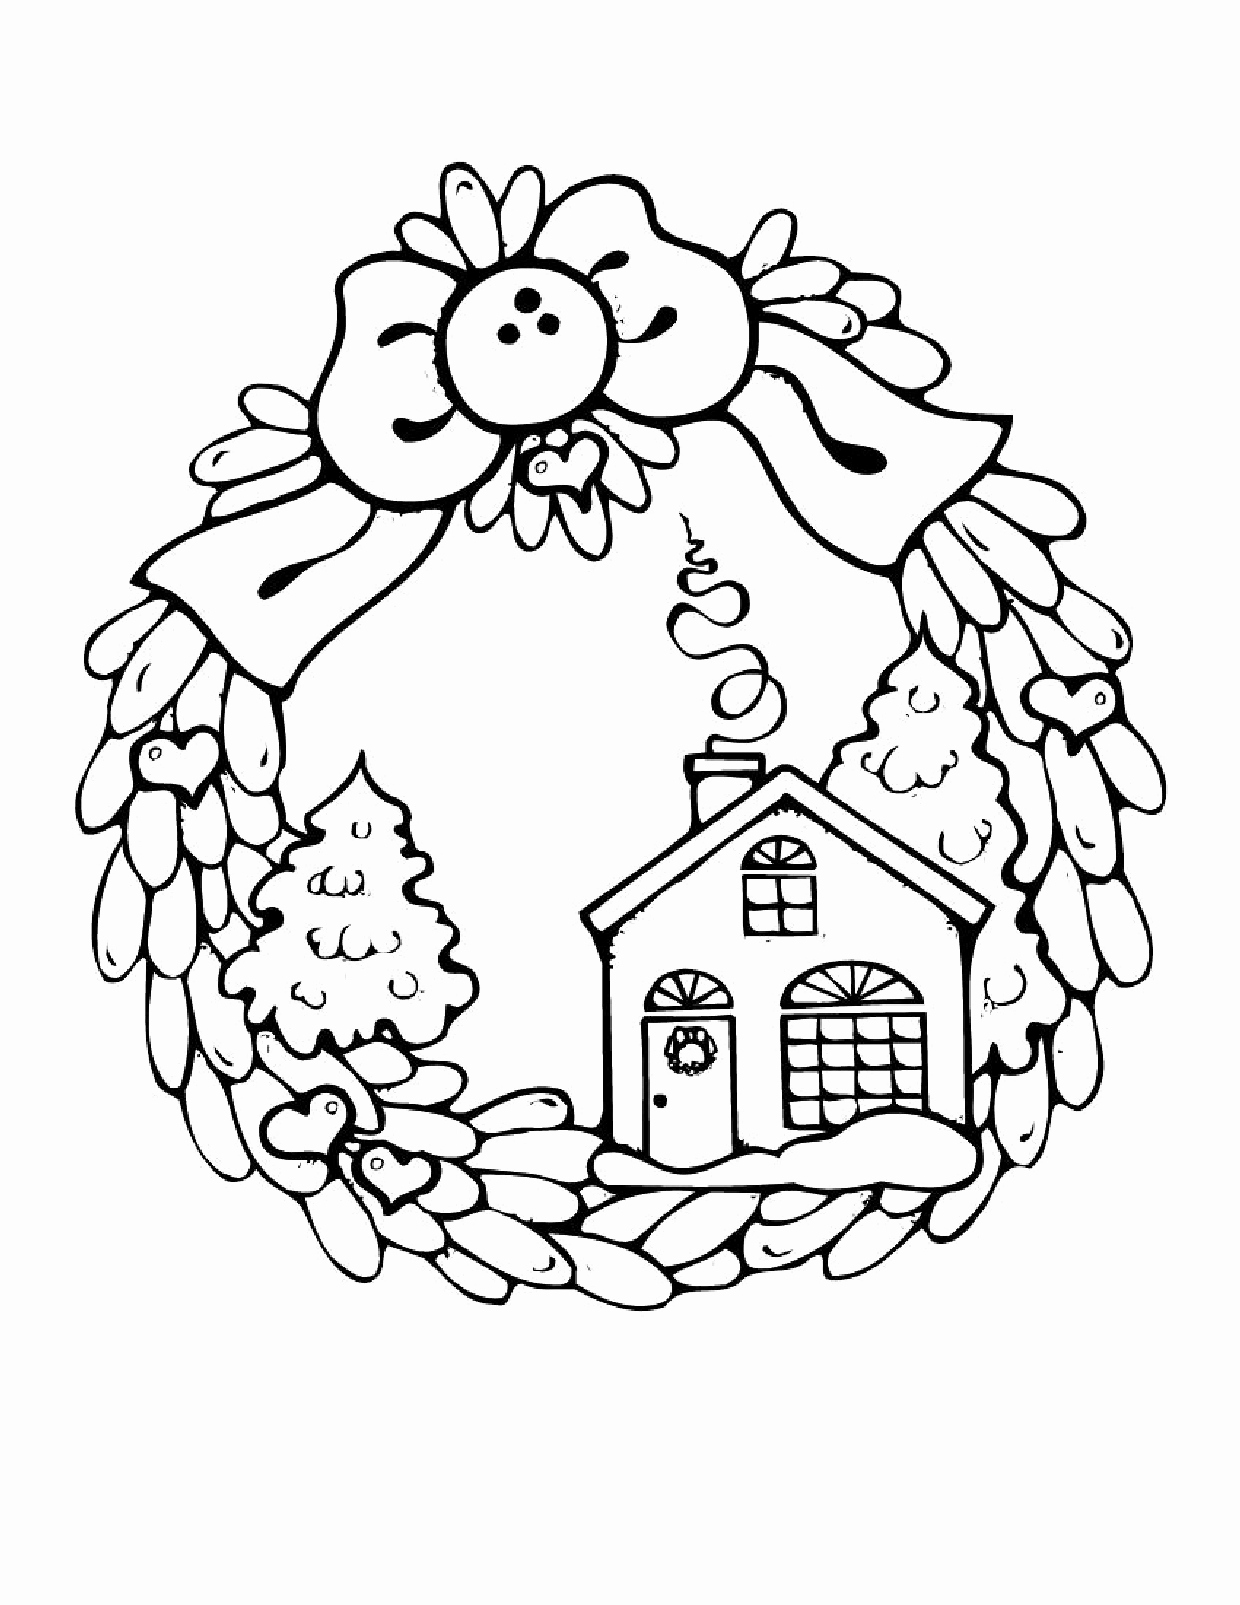 Detailed Winter Coloring Pages At Getcolorings